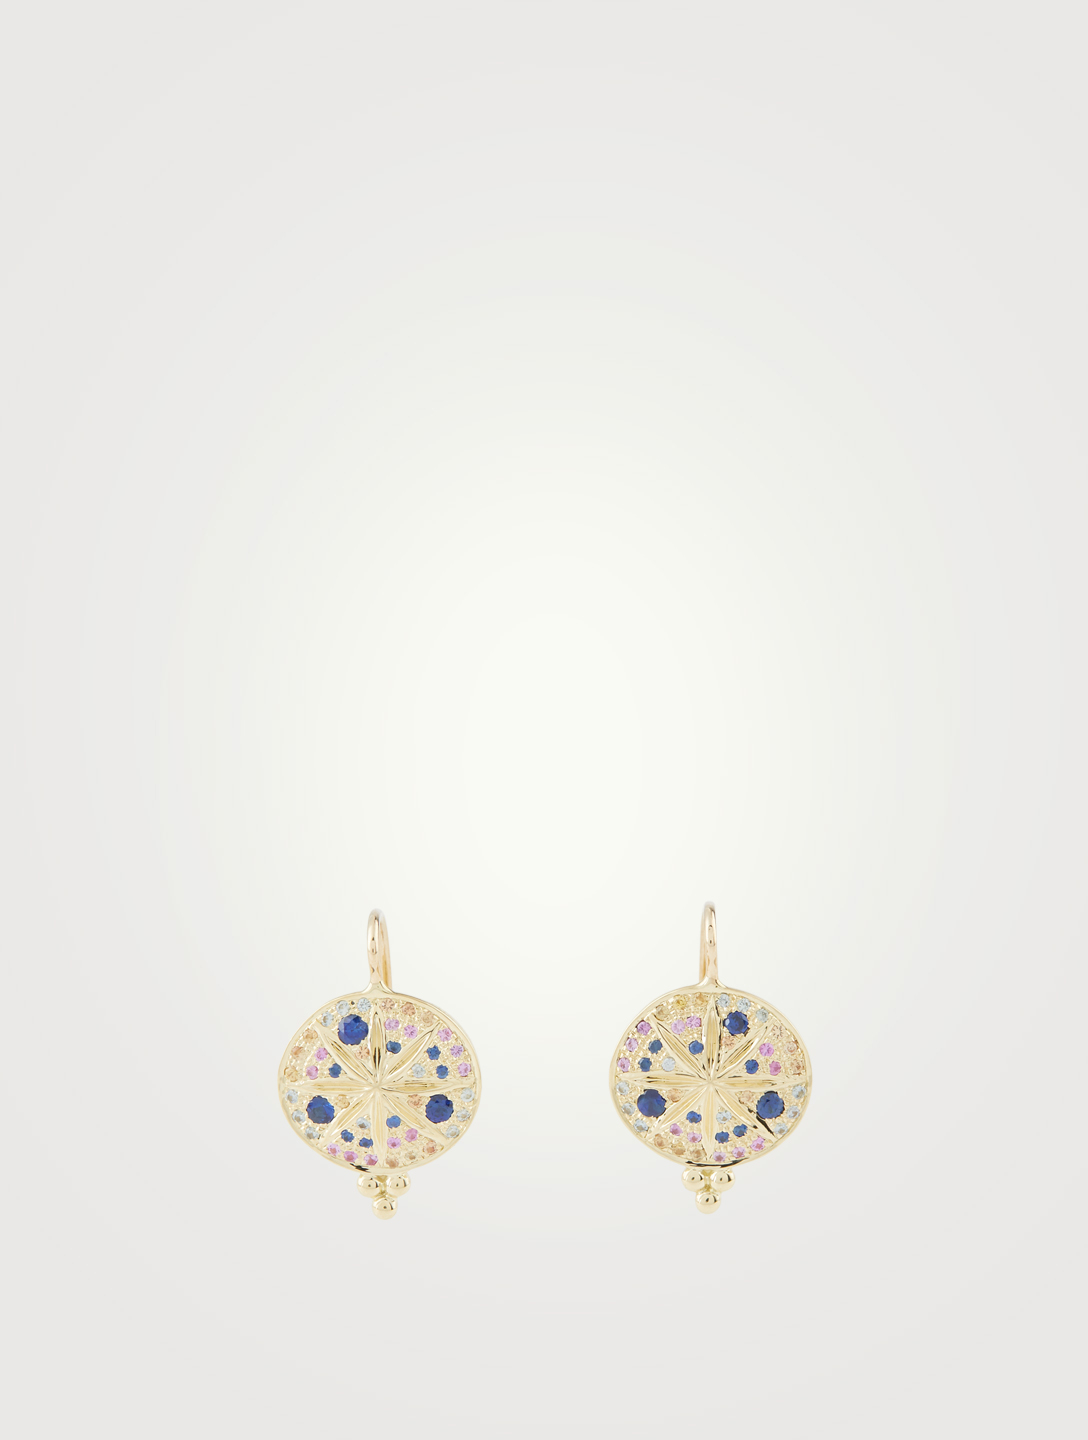 TEMPLE ST. CLAIR 18K Gold Sorcerer Earrings With Multicolour Stones Women's Gold